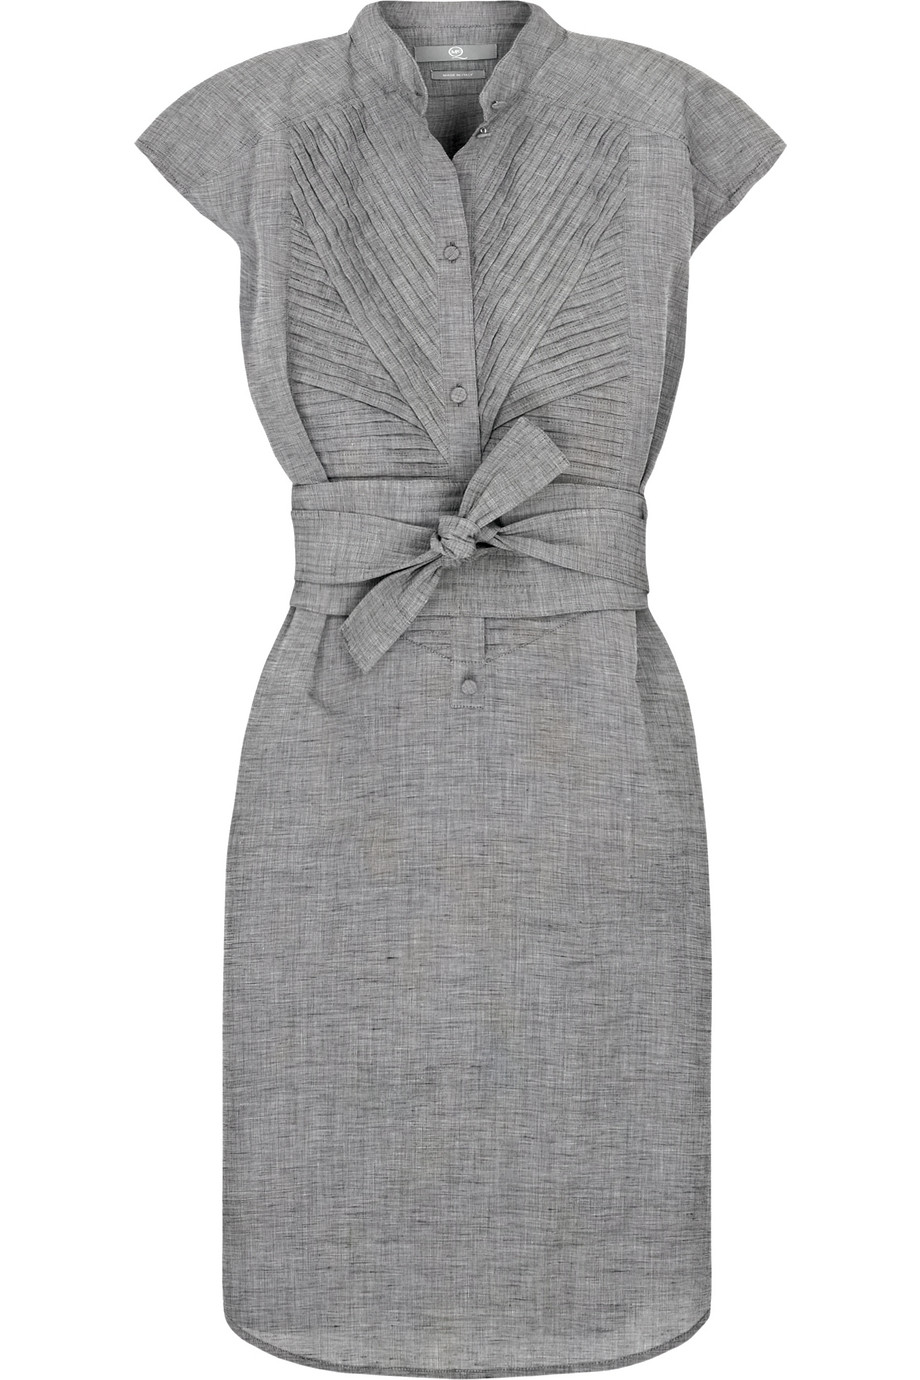 Sharon Mustard Shift Dress Work Dresses, Office Dresses, Work Outfits for Women, Fall Fashion – Morning Lavender Find this Pin and more on style. by Aubrie Jacobs. I need this outfit to live and of course they no longer carry it.